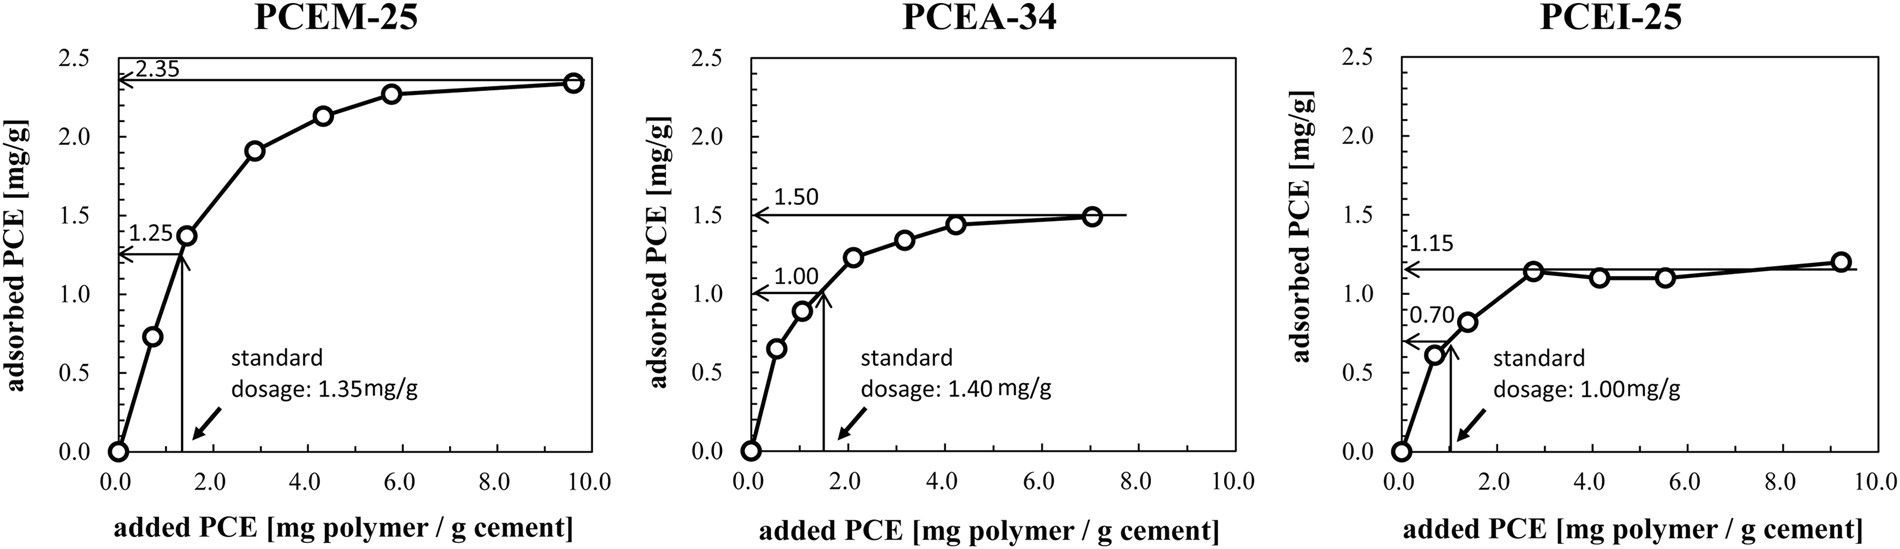 adsorbed conformations of pce superplasticizers in cement pore solution  unraveled by molecular dynamics simulations | scientific reports